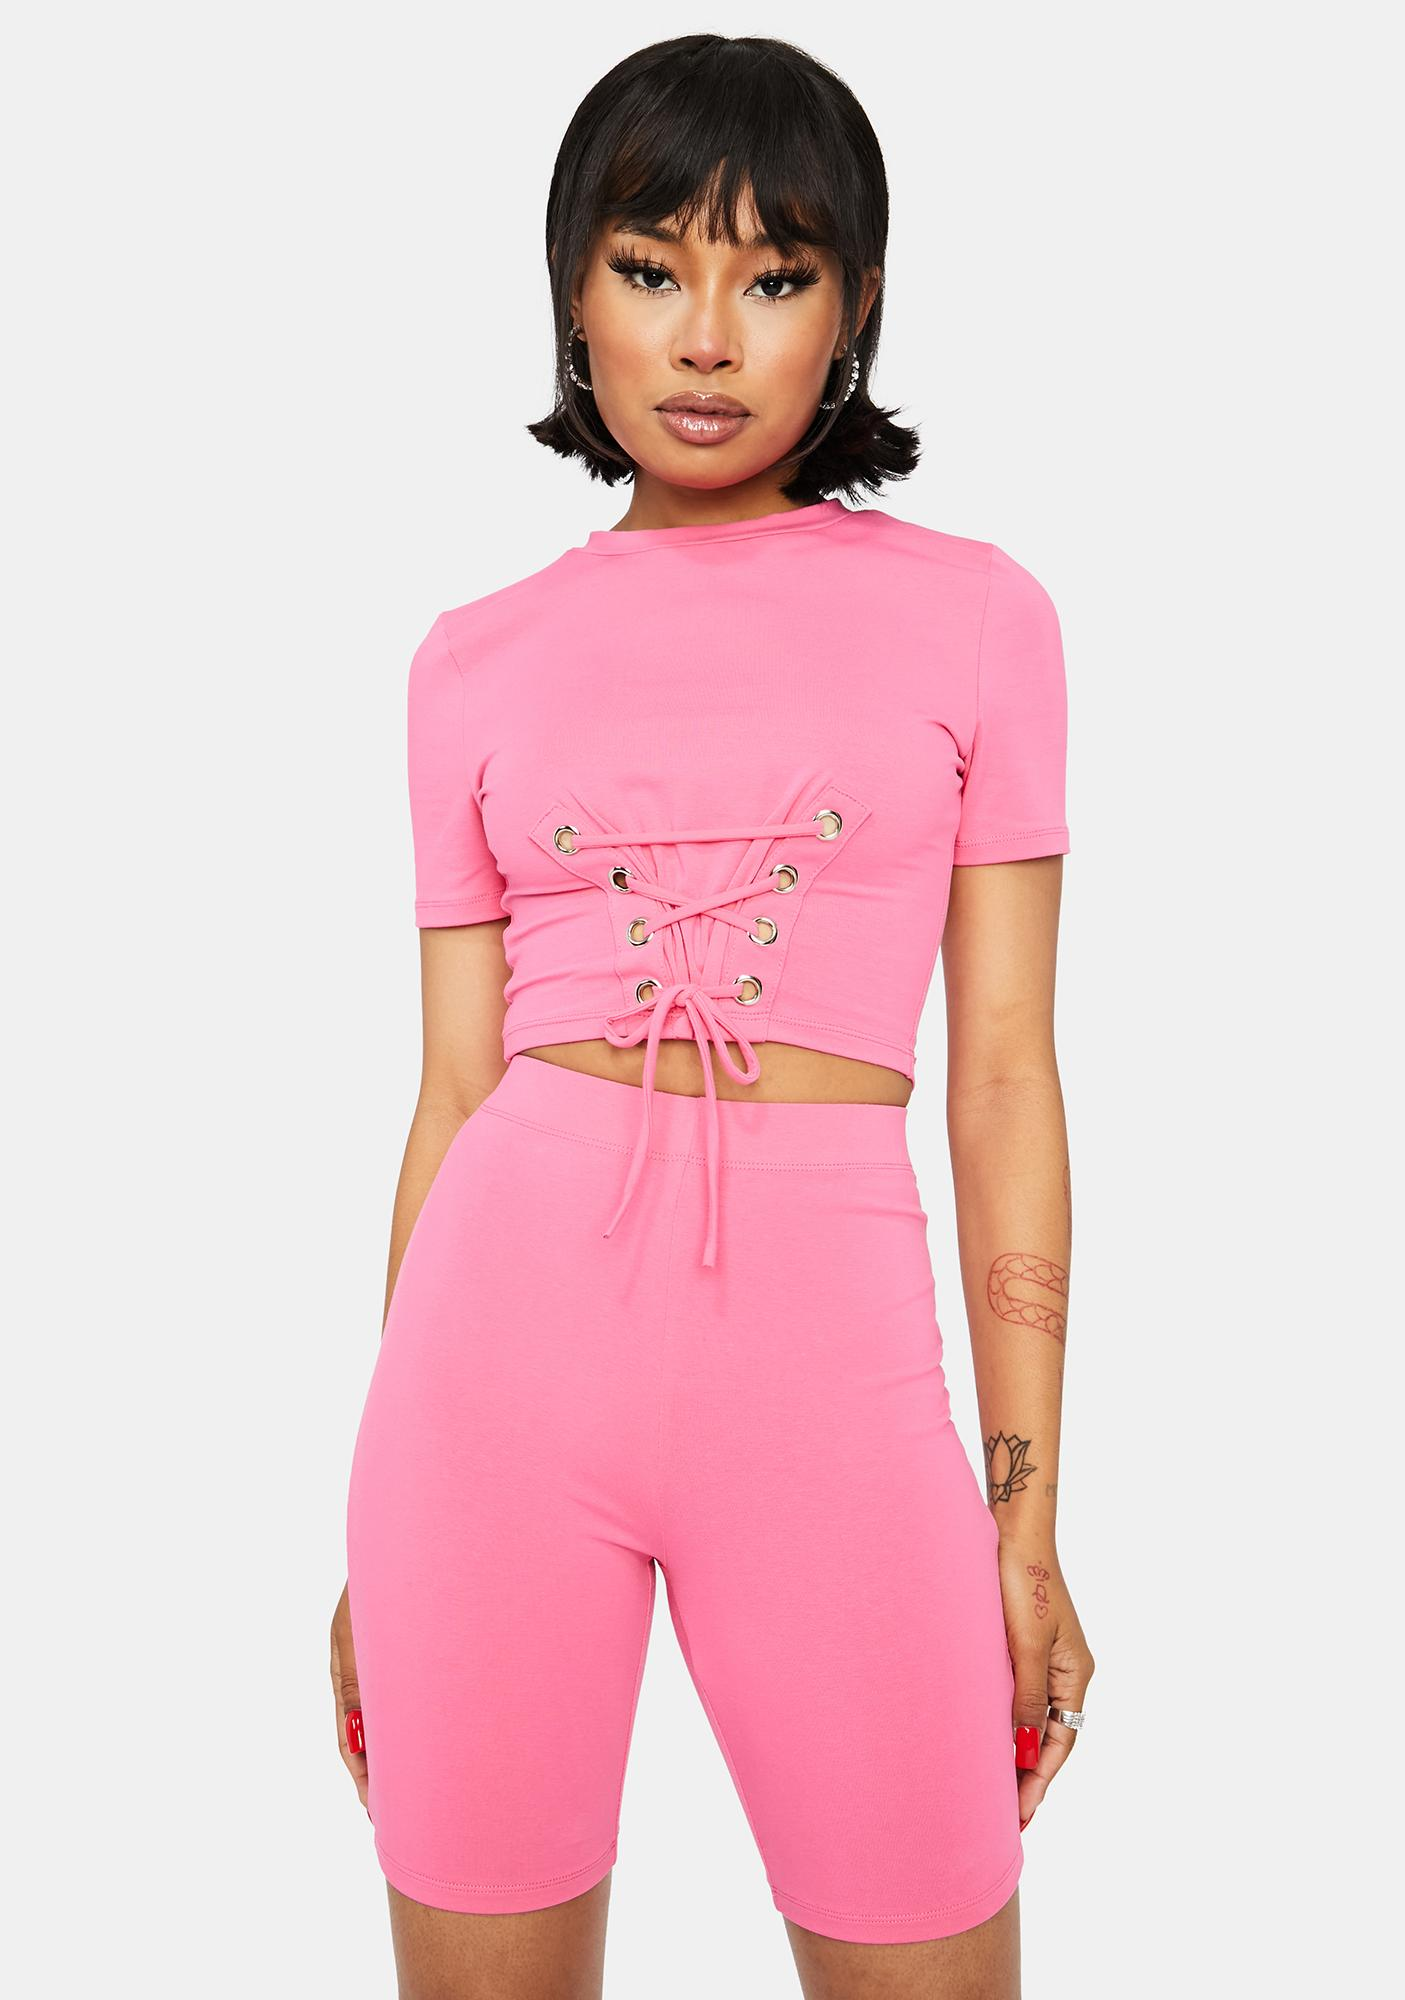 Flirty Actually Famous Lace Up Crop Top Shorts Set